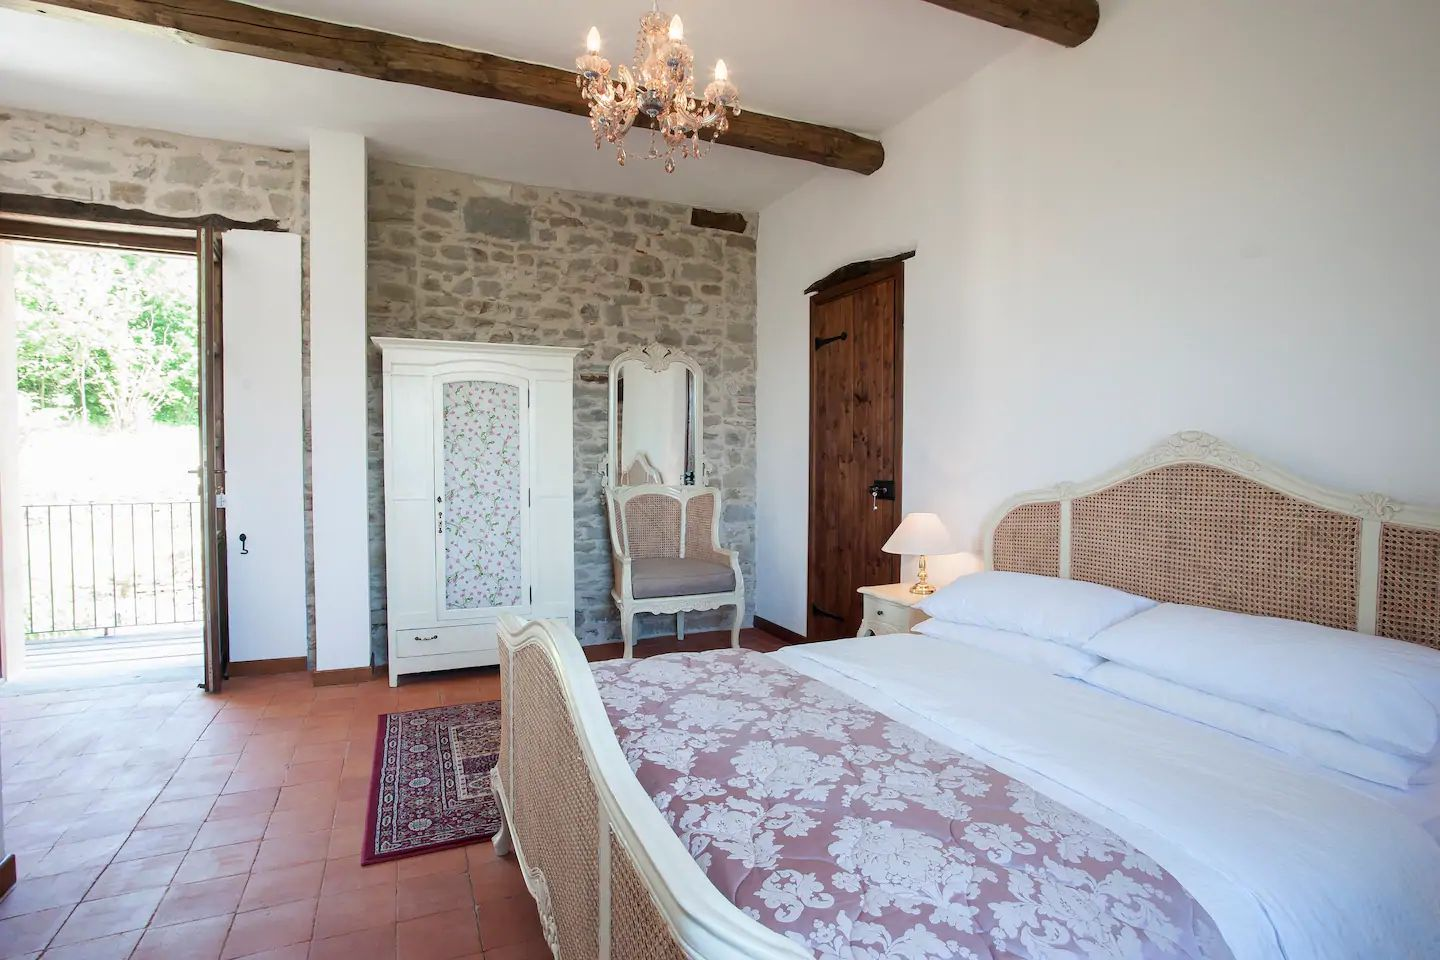 Beautiful holidays in Northern Italy, Agriturismo, Bed and breakfast, Villa Bergolo